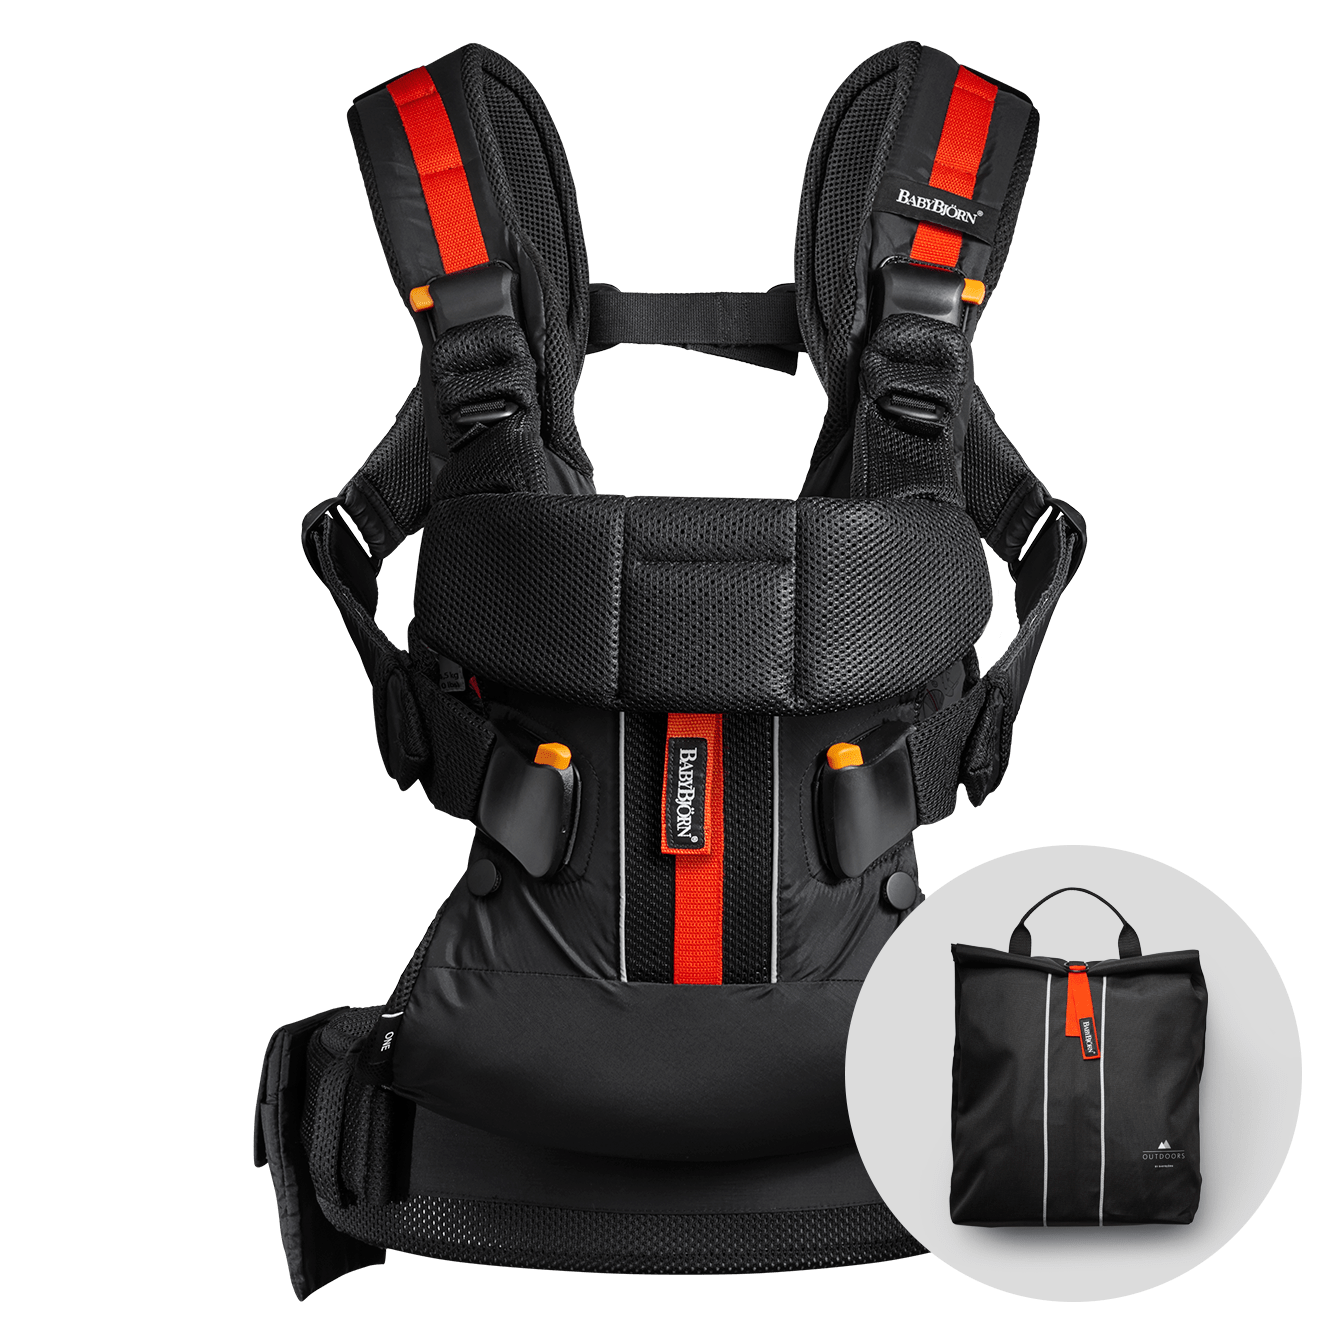 baby-carrier-one-outdoors-black-094068-sticker-babybjorn